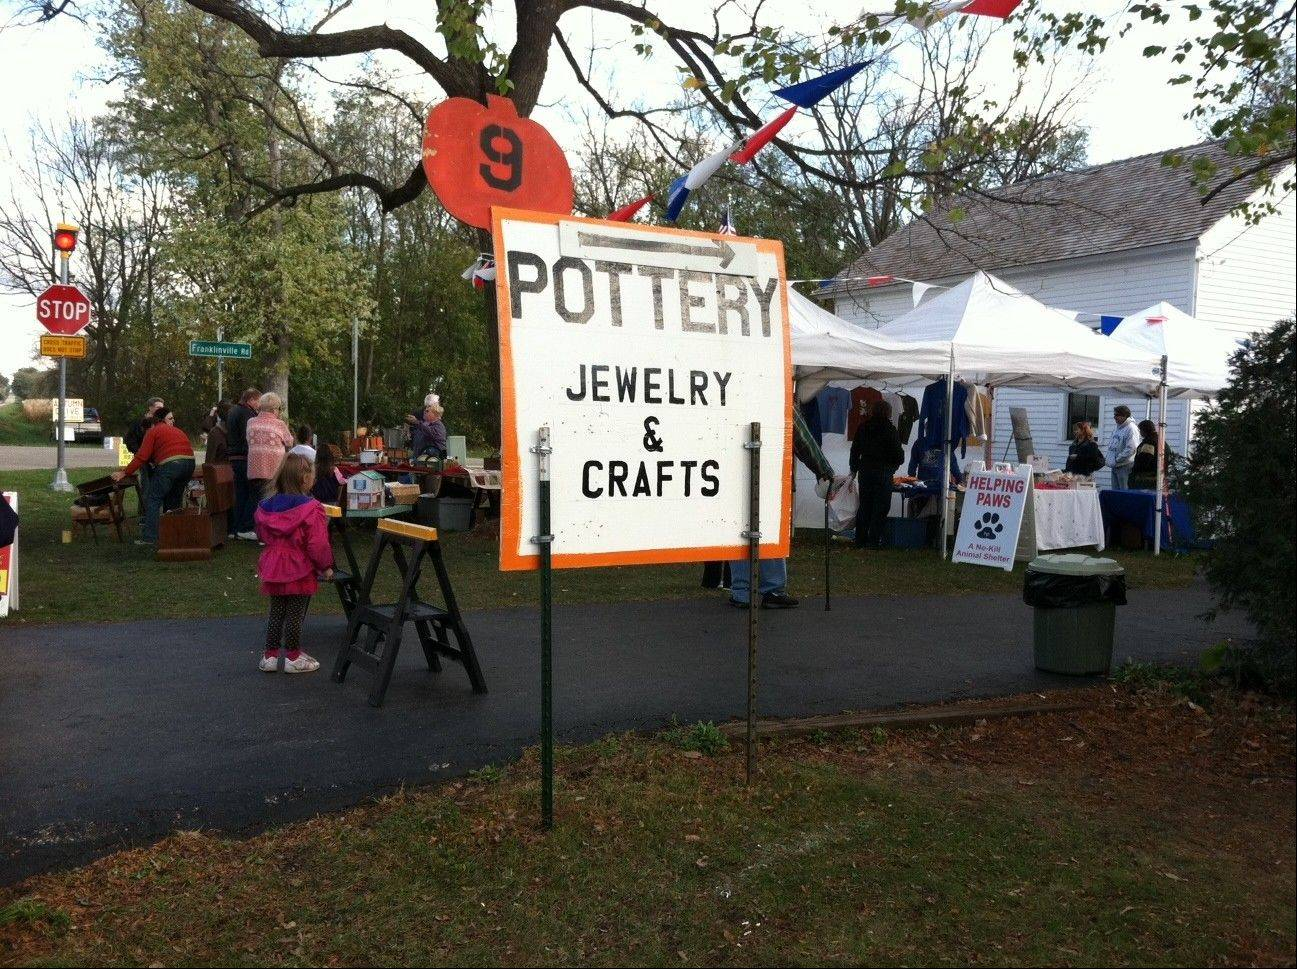 Plenty of vendors have their wares for sale at the Autumn Drive, which takes place along and around Garden Valley Road in Woodstock the third weekend of October every year. This year marks the event's 25th anniversary.